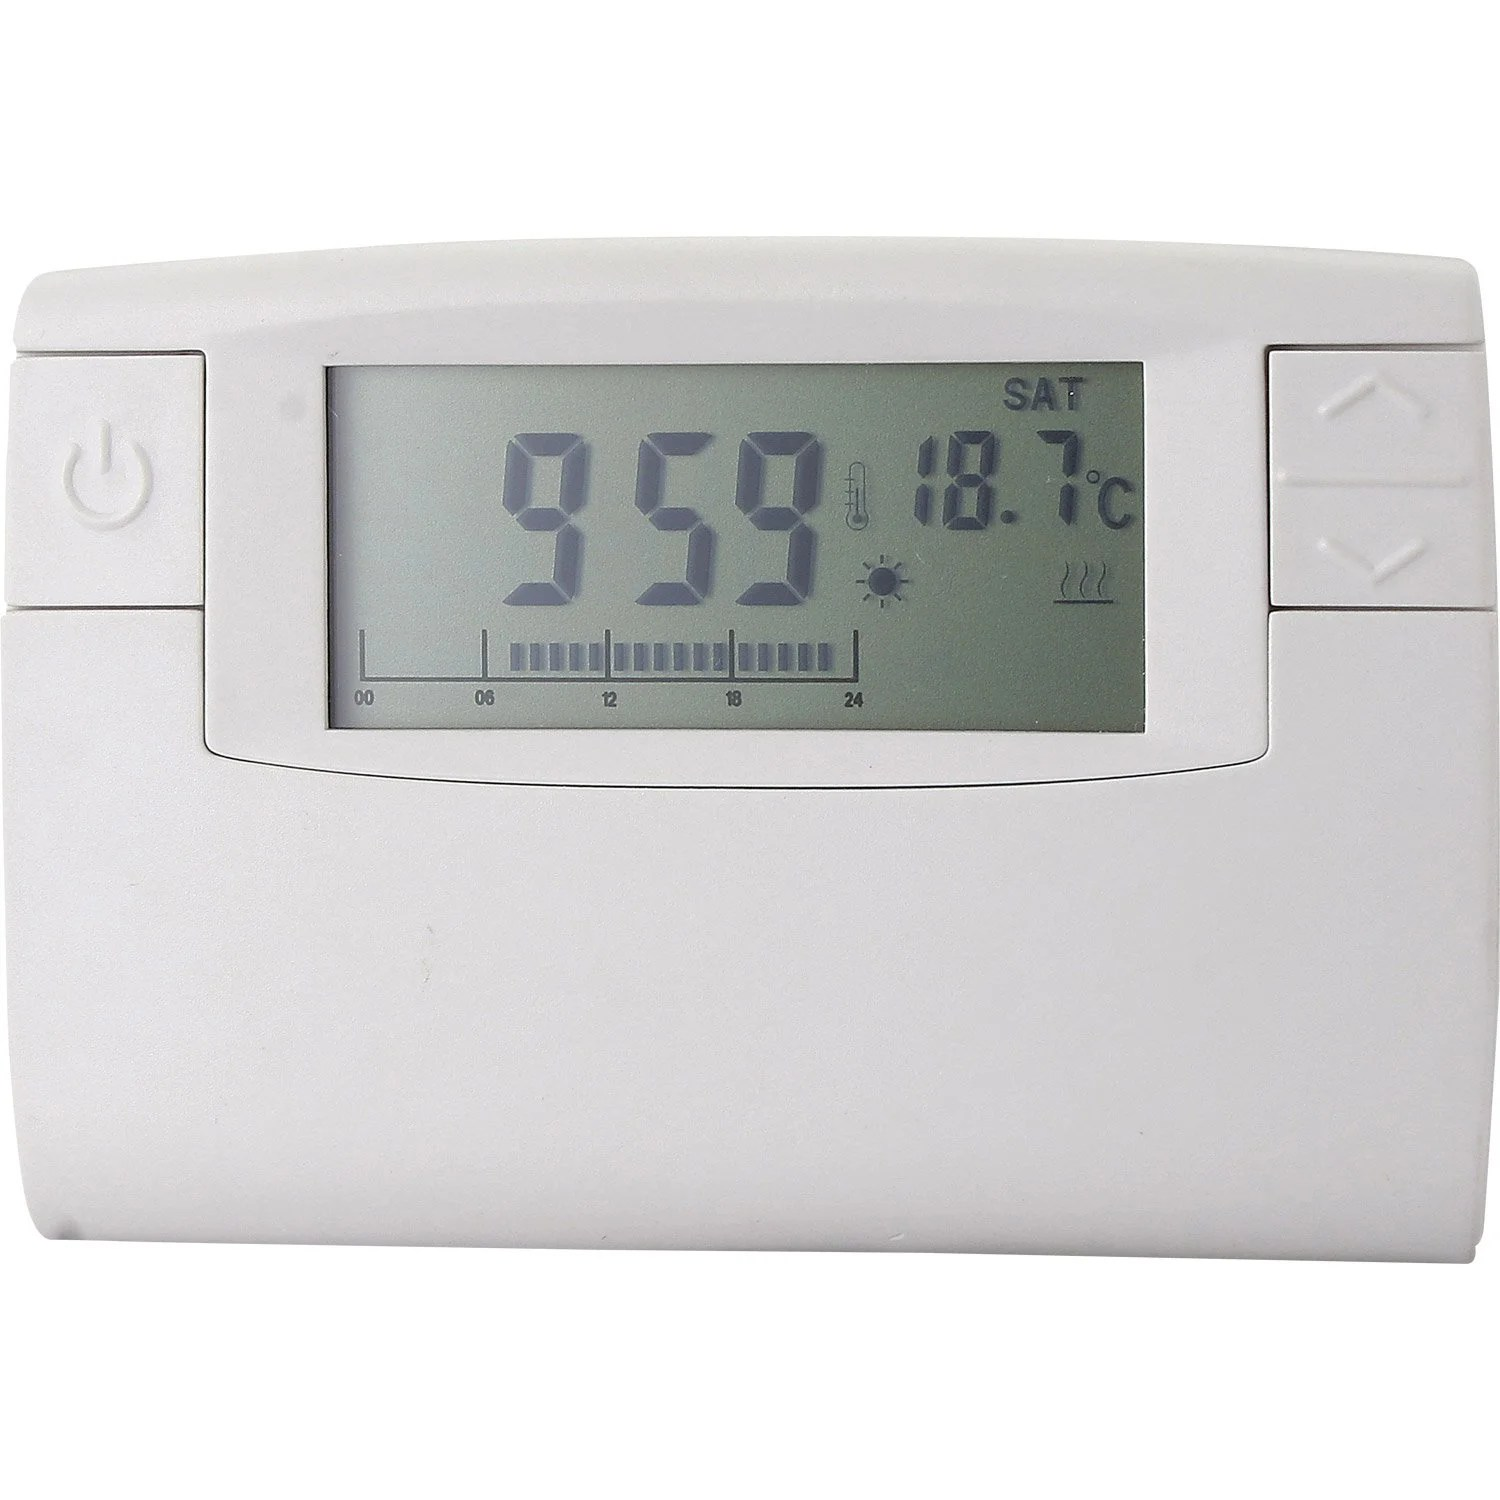 Thermostat Chaudiere Gaz Leroy Merlin Thermostat Programmable Filaire Celcia Crono 911